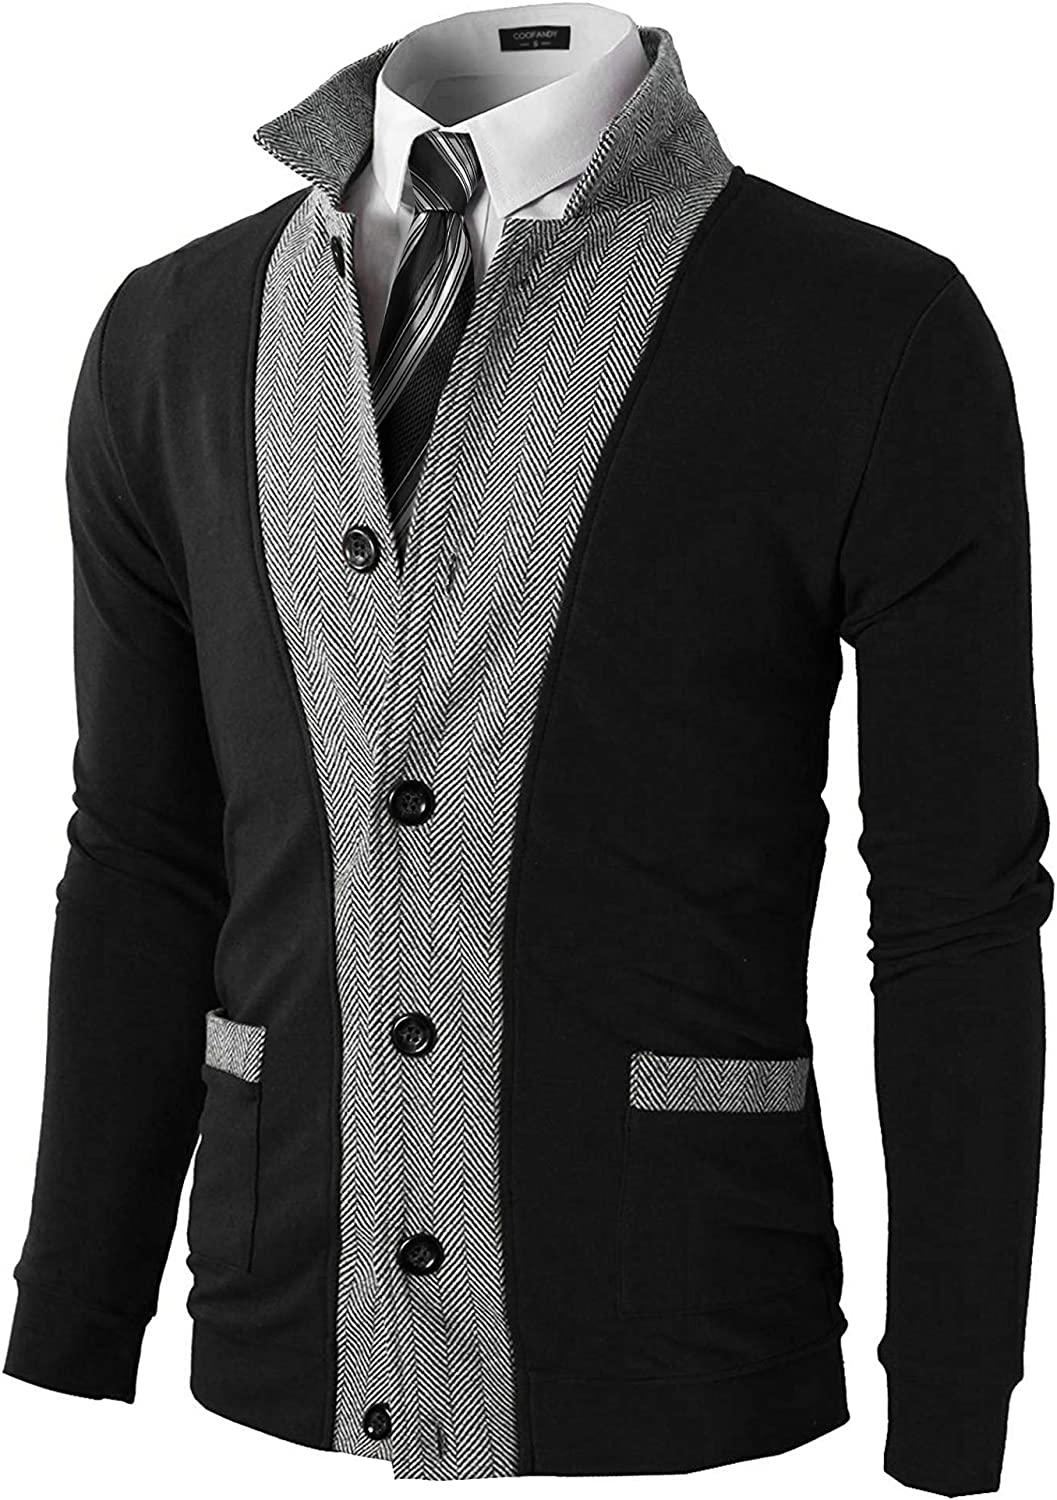 COOFANDY Mens Casual Cardigans Slim Fit Button Down Sweater Coat